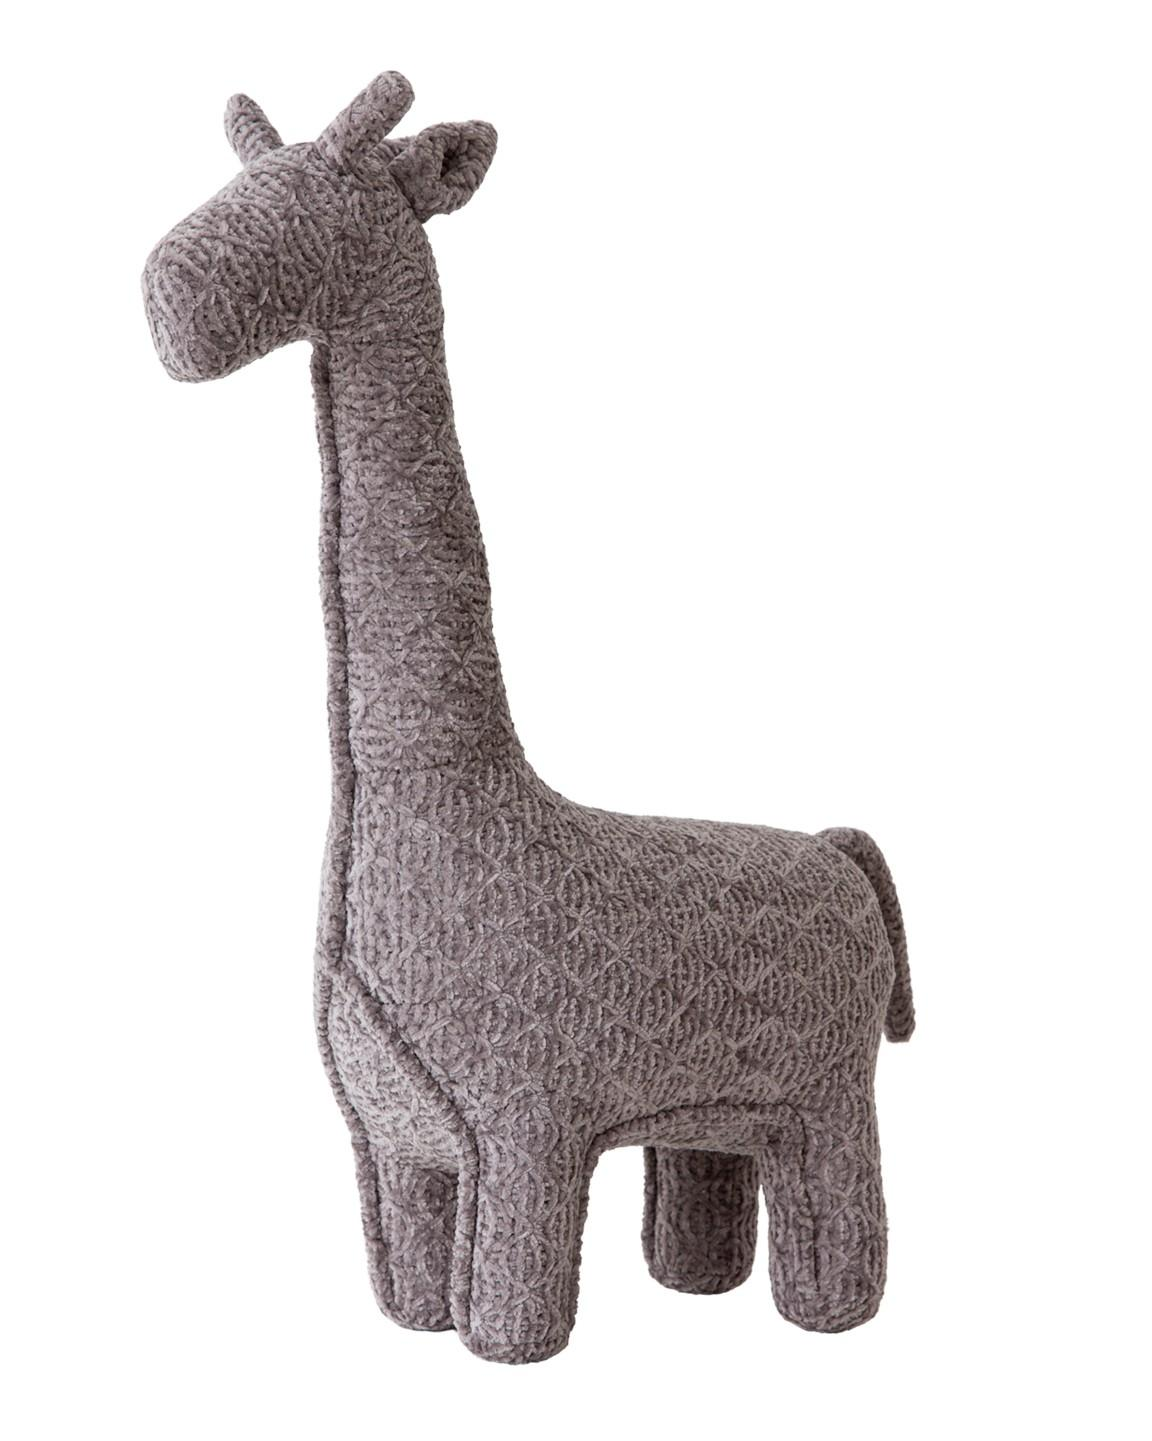 Pure by Vaco - Giraffe Small Grey